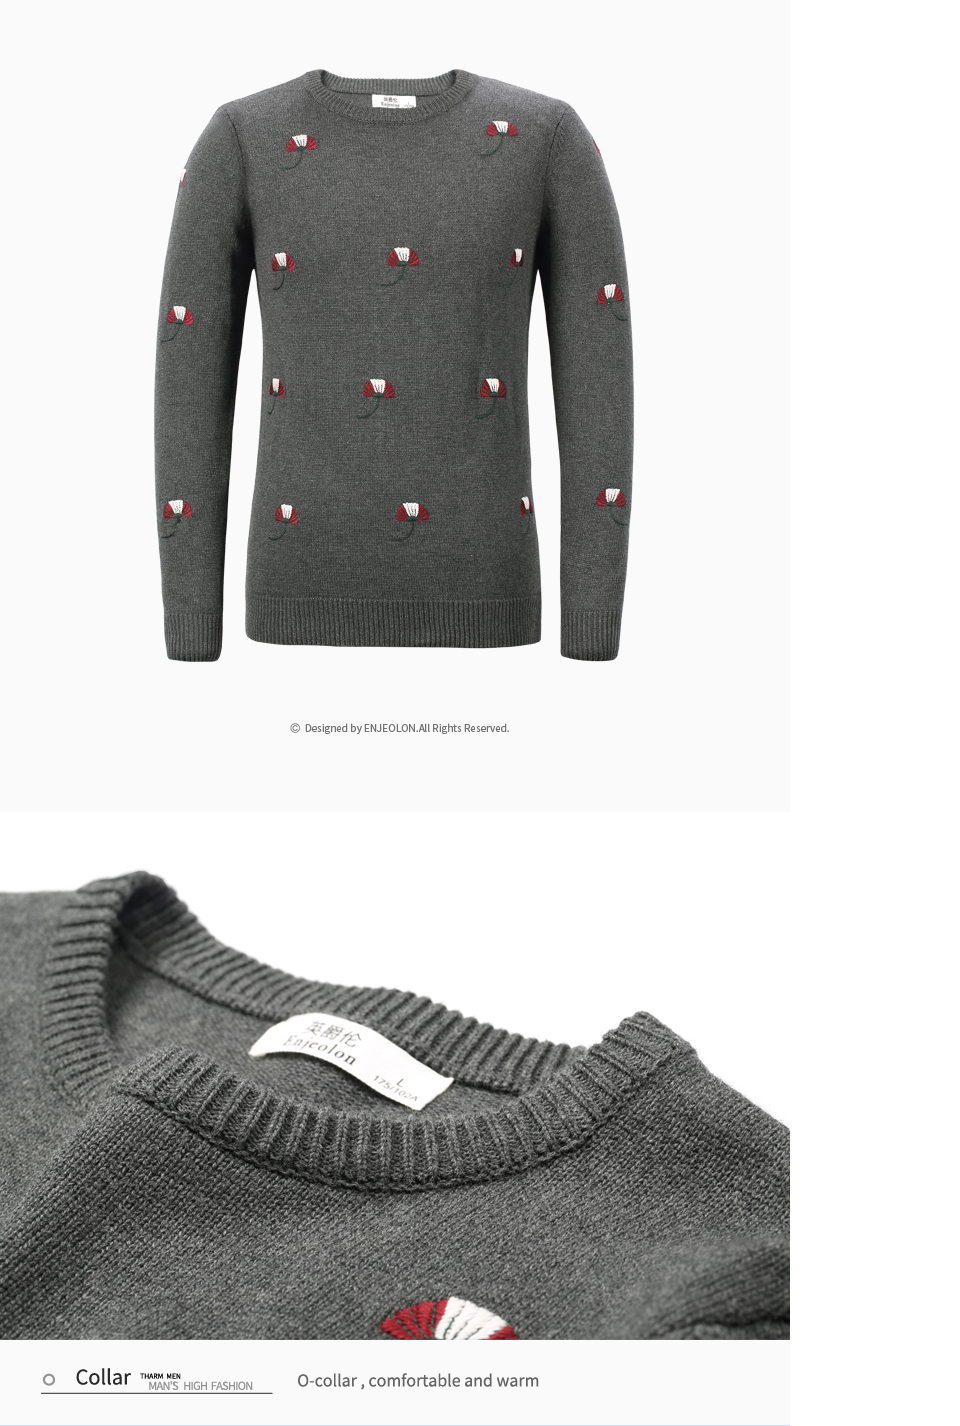 HTB1Ah1JdzoIL1JjSZFyq6zFBpXaP - Enjeolon brand top fall winter warm knitted pullovers Sweater man 100 Cotton pattern pullober o-neck pullover Sweater men MY3227